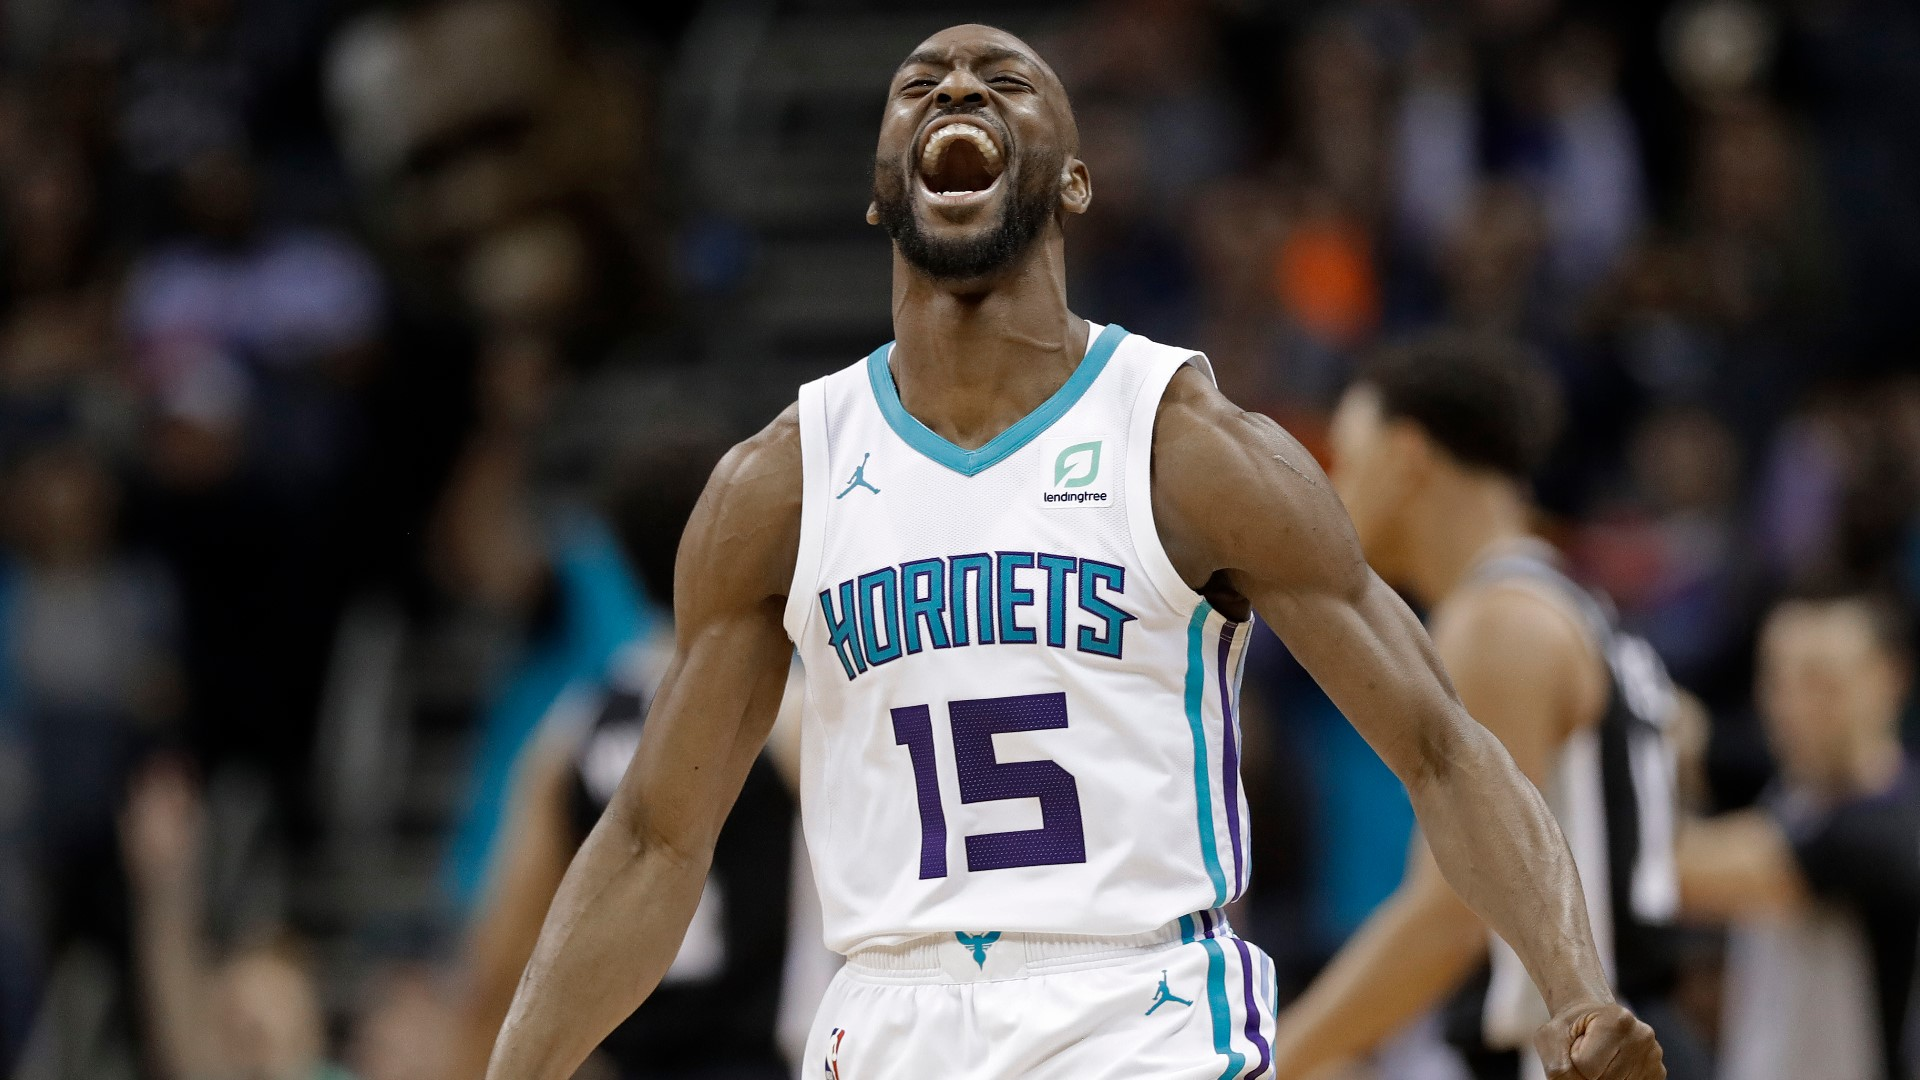 Kemba Walker Leaving Charlotte Hornets For Boston Celtics Was An Extremely Tough Decision Wcnc Com